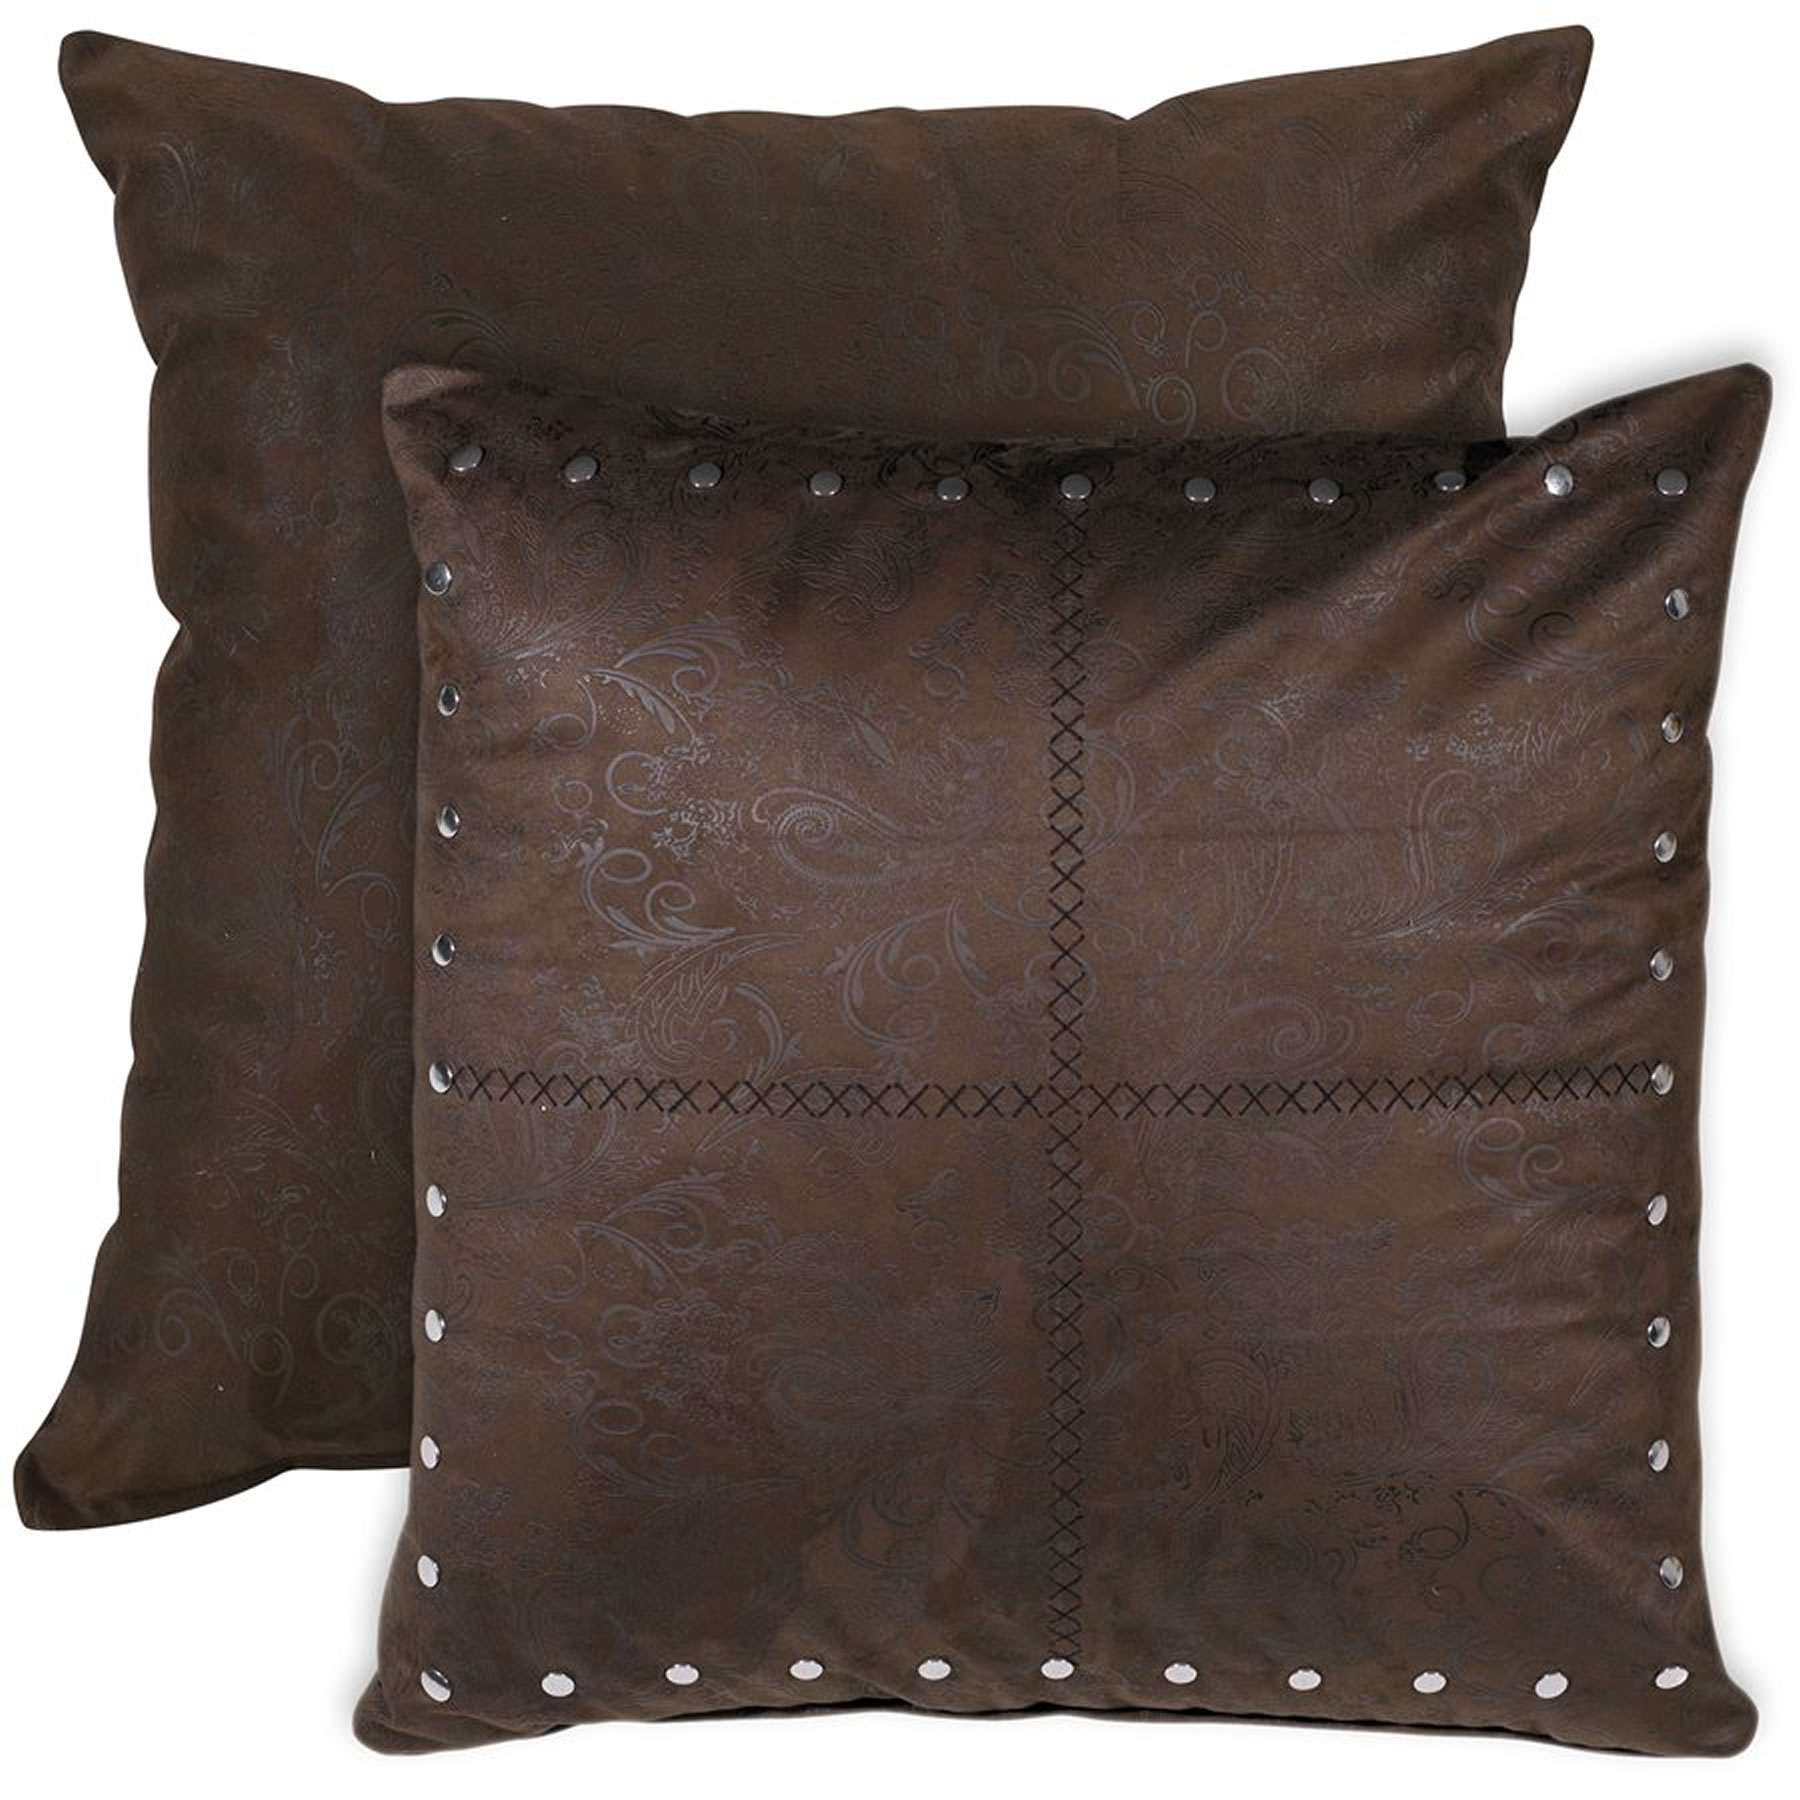 Decorative Pillows Leather : Pungo Ridge - Tucson Faux Leather Tooled Pillow, Decorative Pillows & Shams, WS4078ES